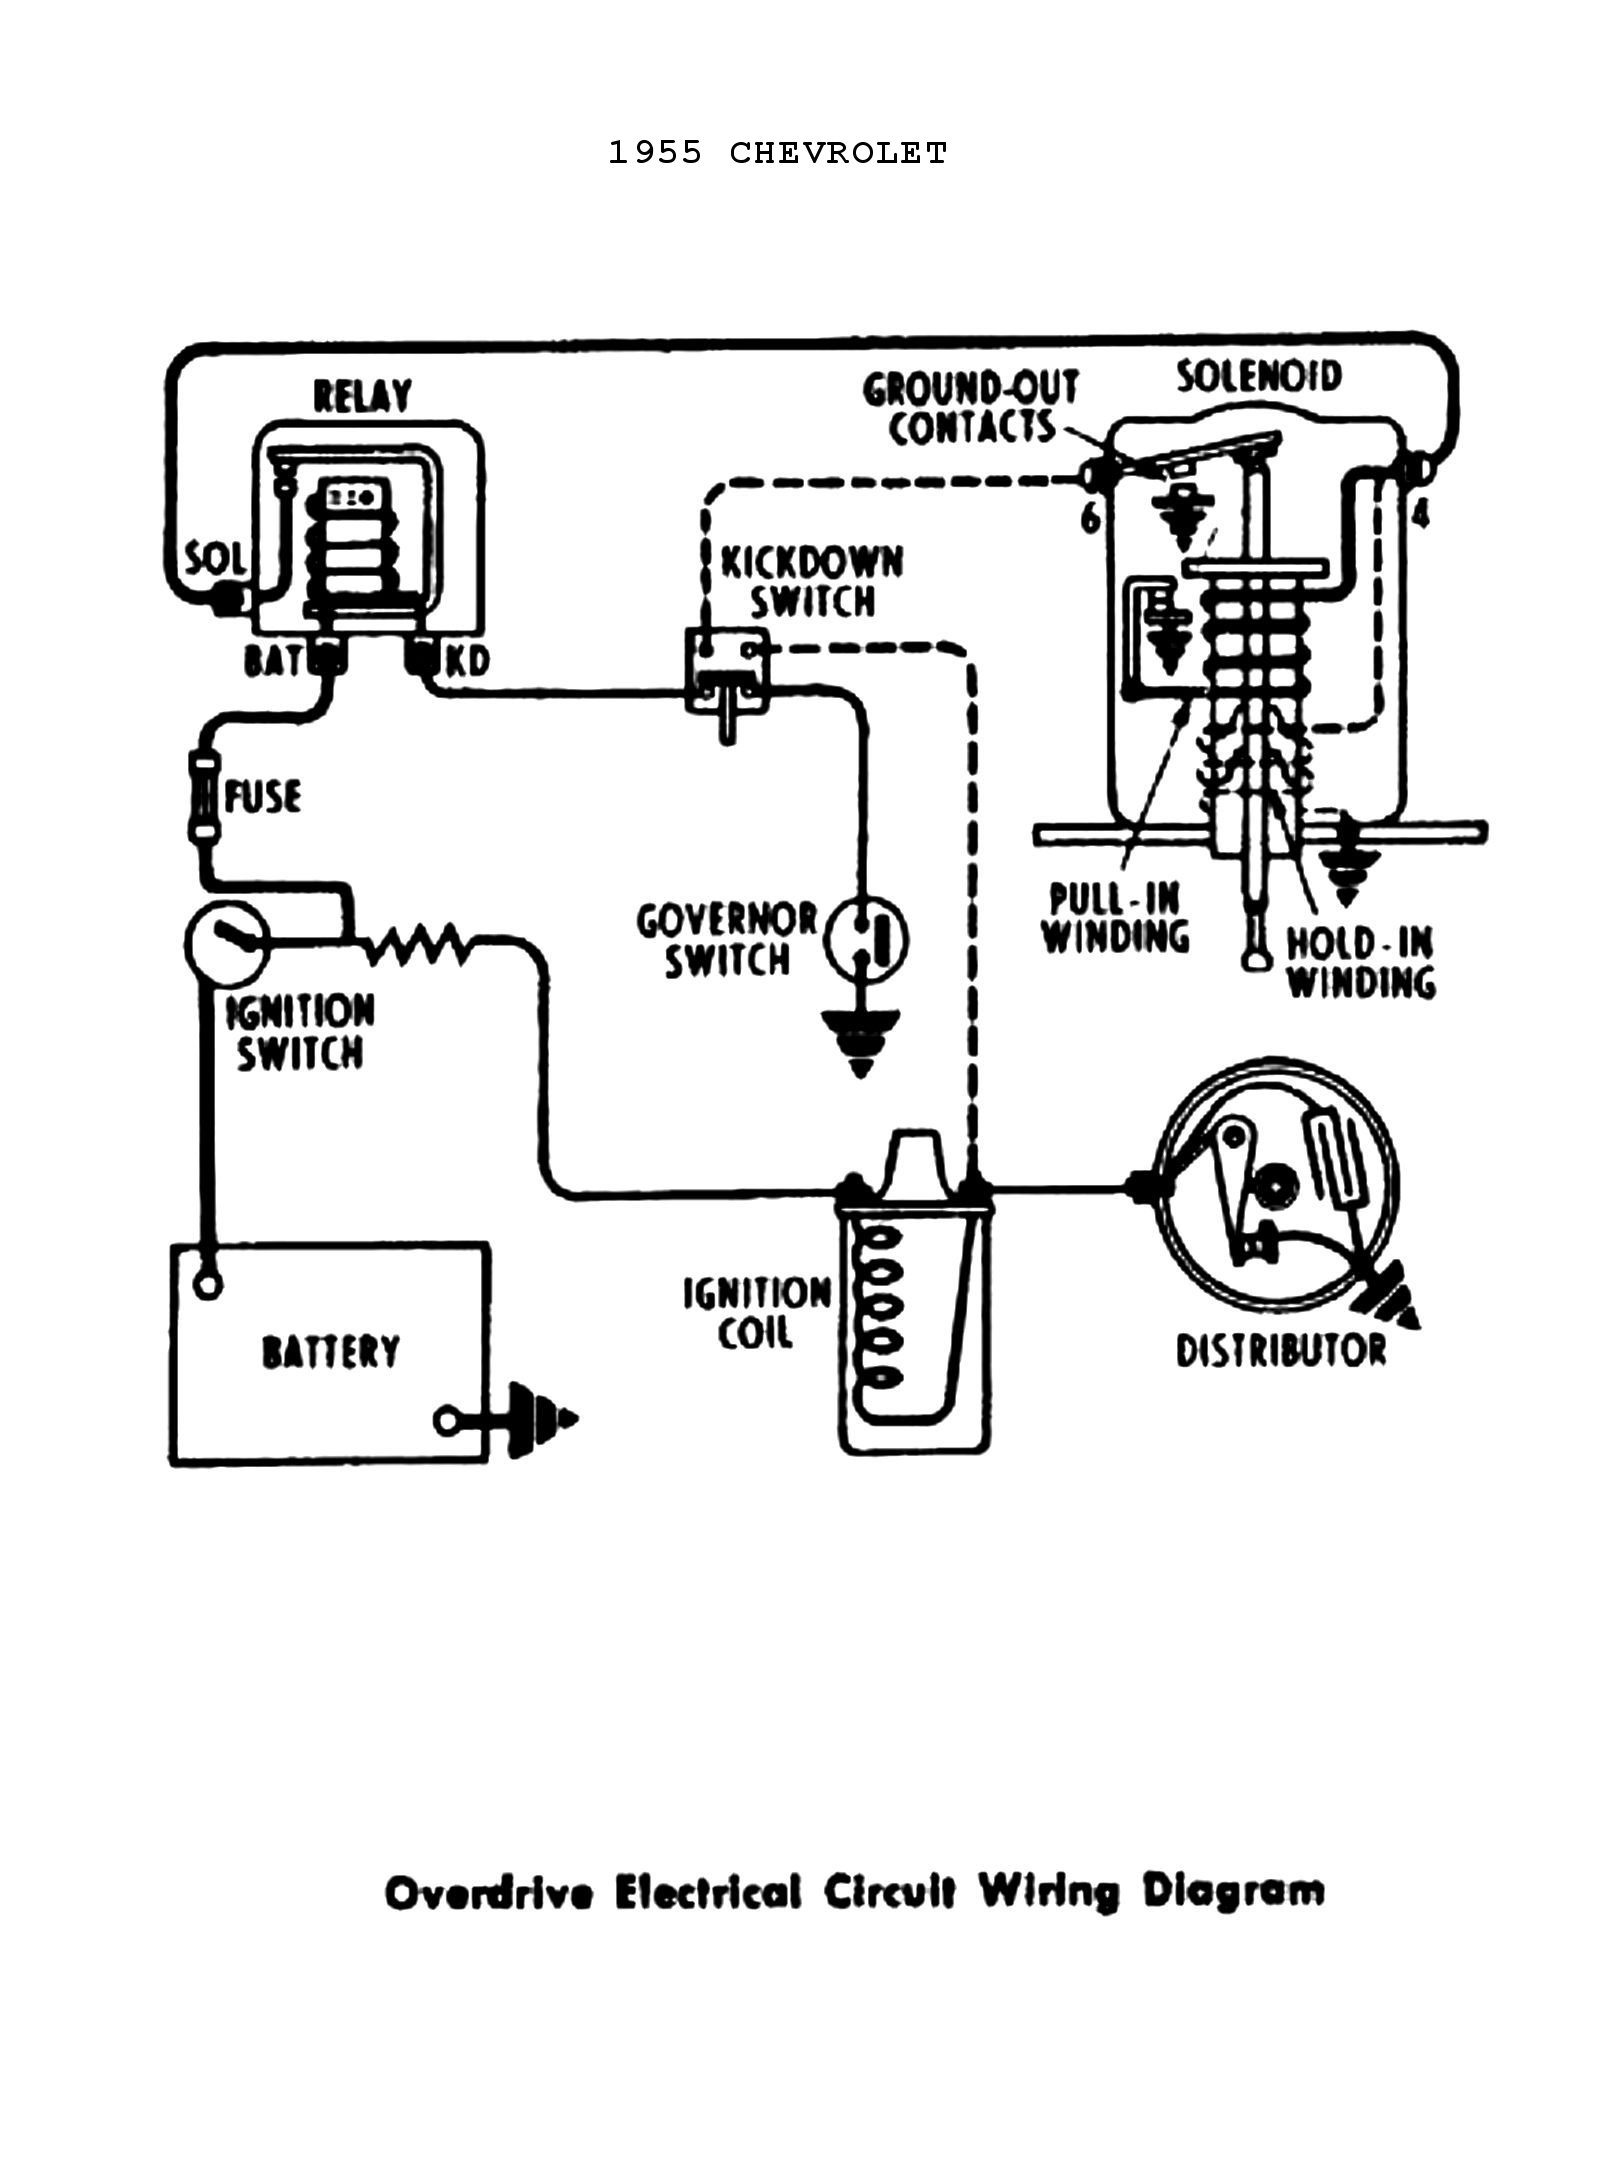 55odtrans1 simple chevy wiring diagram chevy truck wiring \u2022 wiring diagrams chevy 350 ignition wiring diagram at crackthecode.co